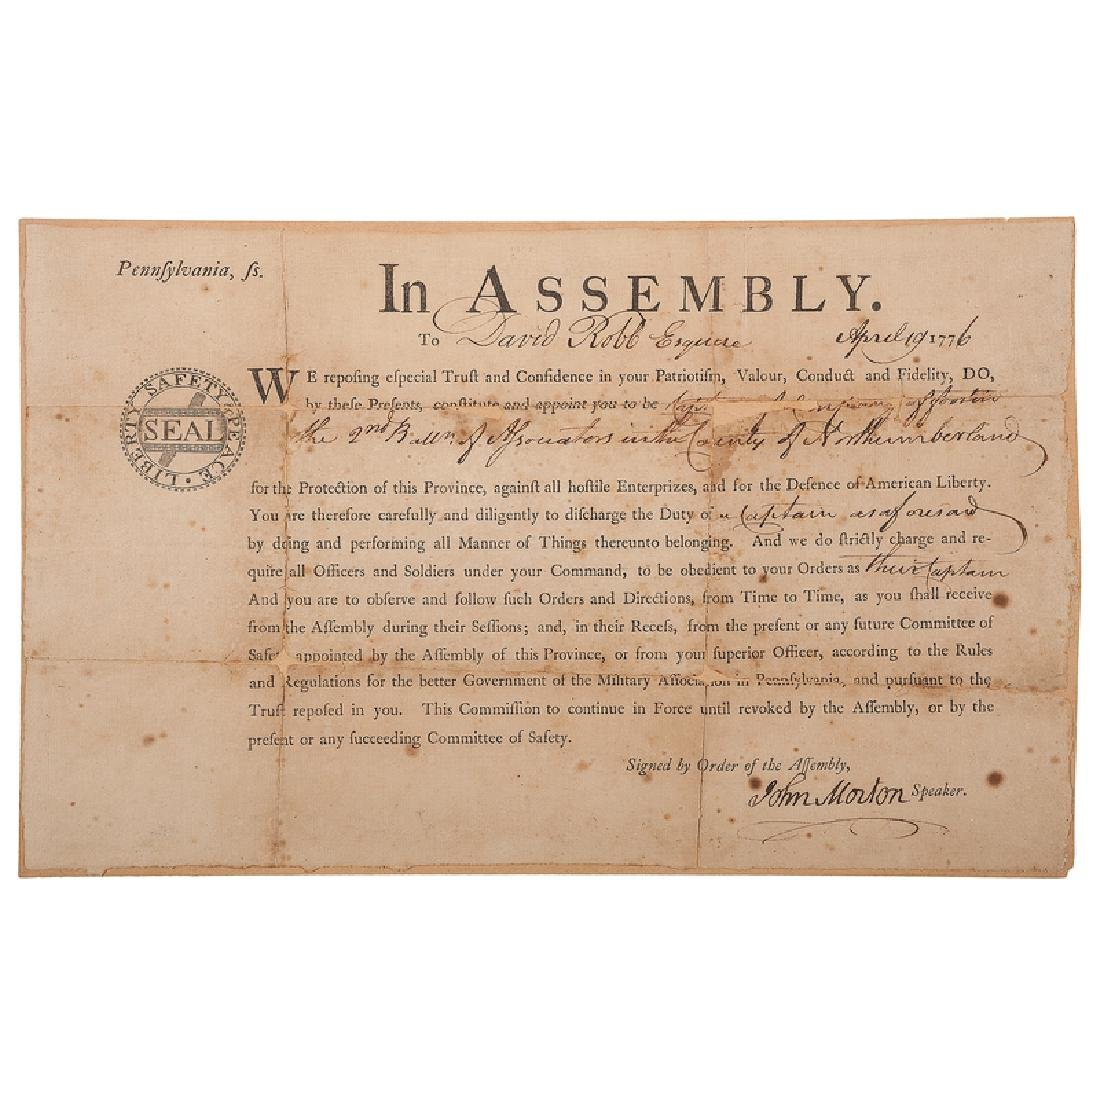 John Morton, Signer, DS Appointment by the Committee of